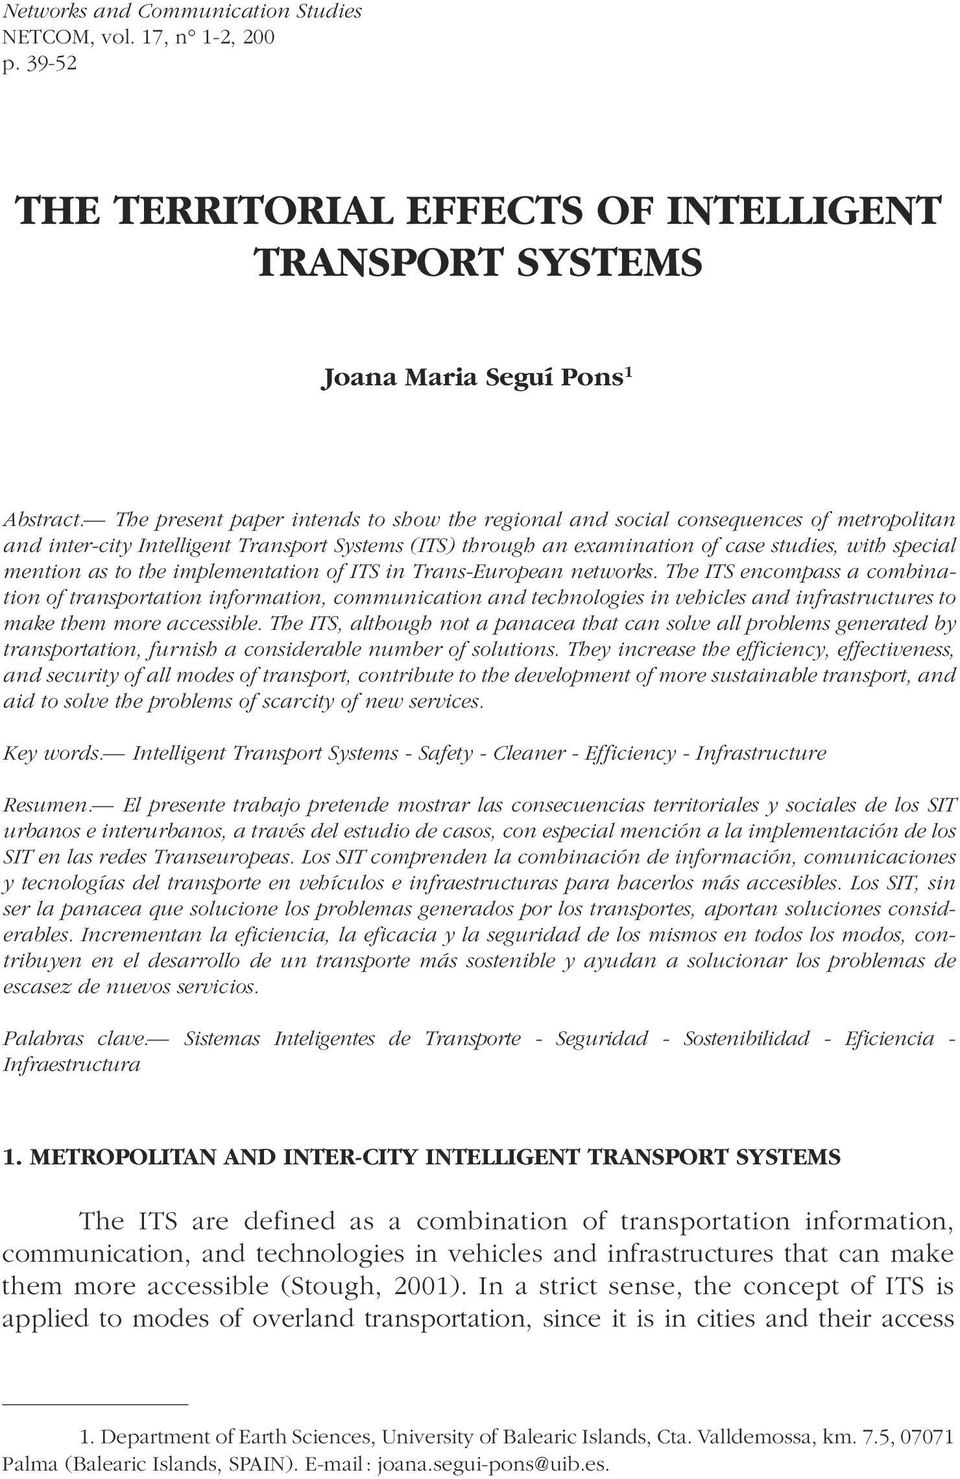 as to the implementation of ITS in Trans-European networks.